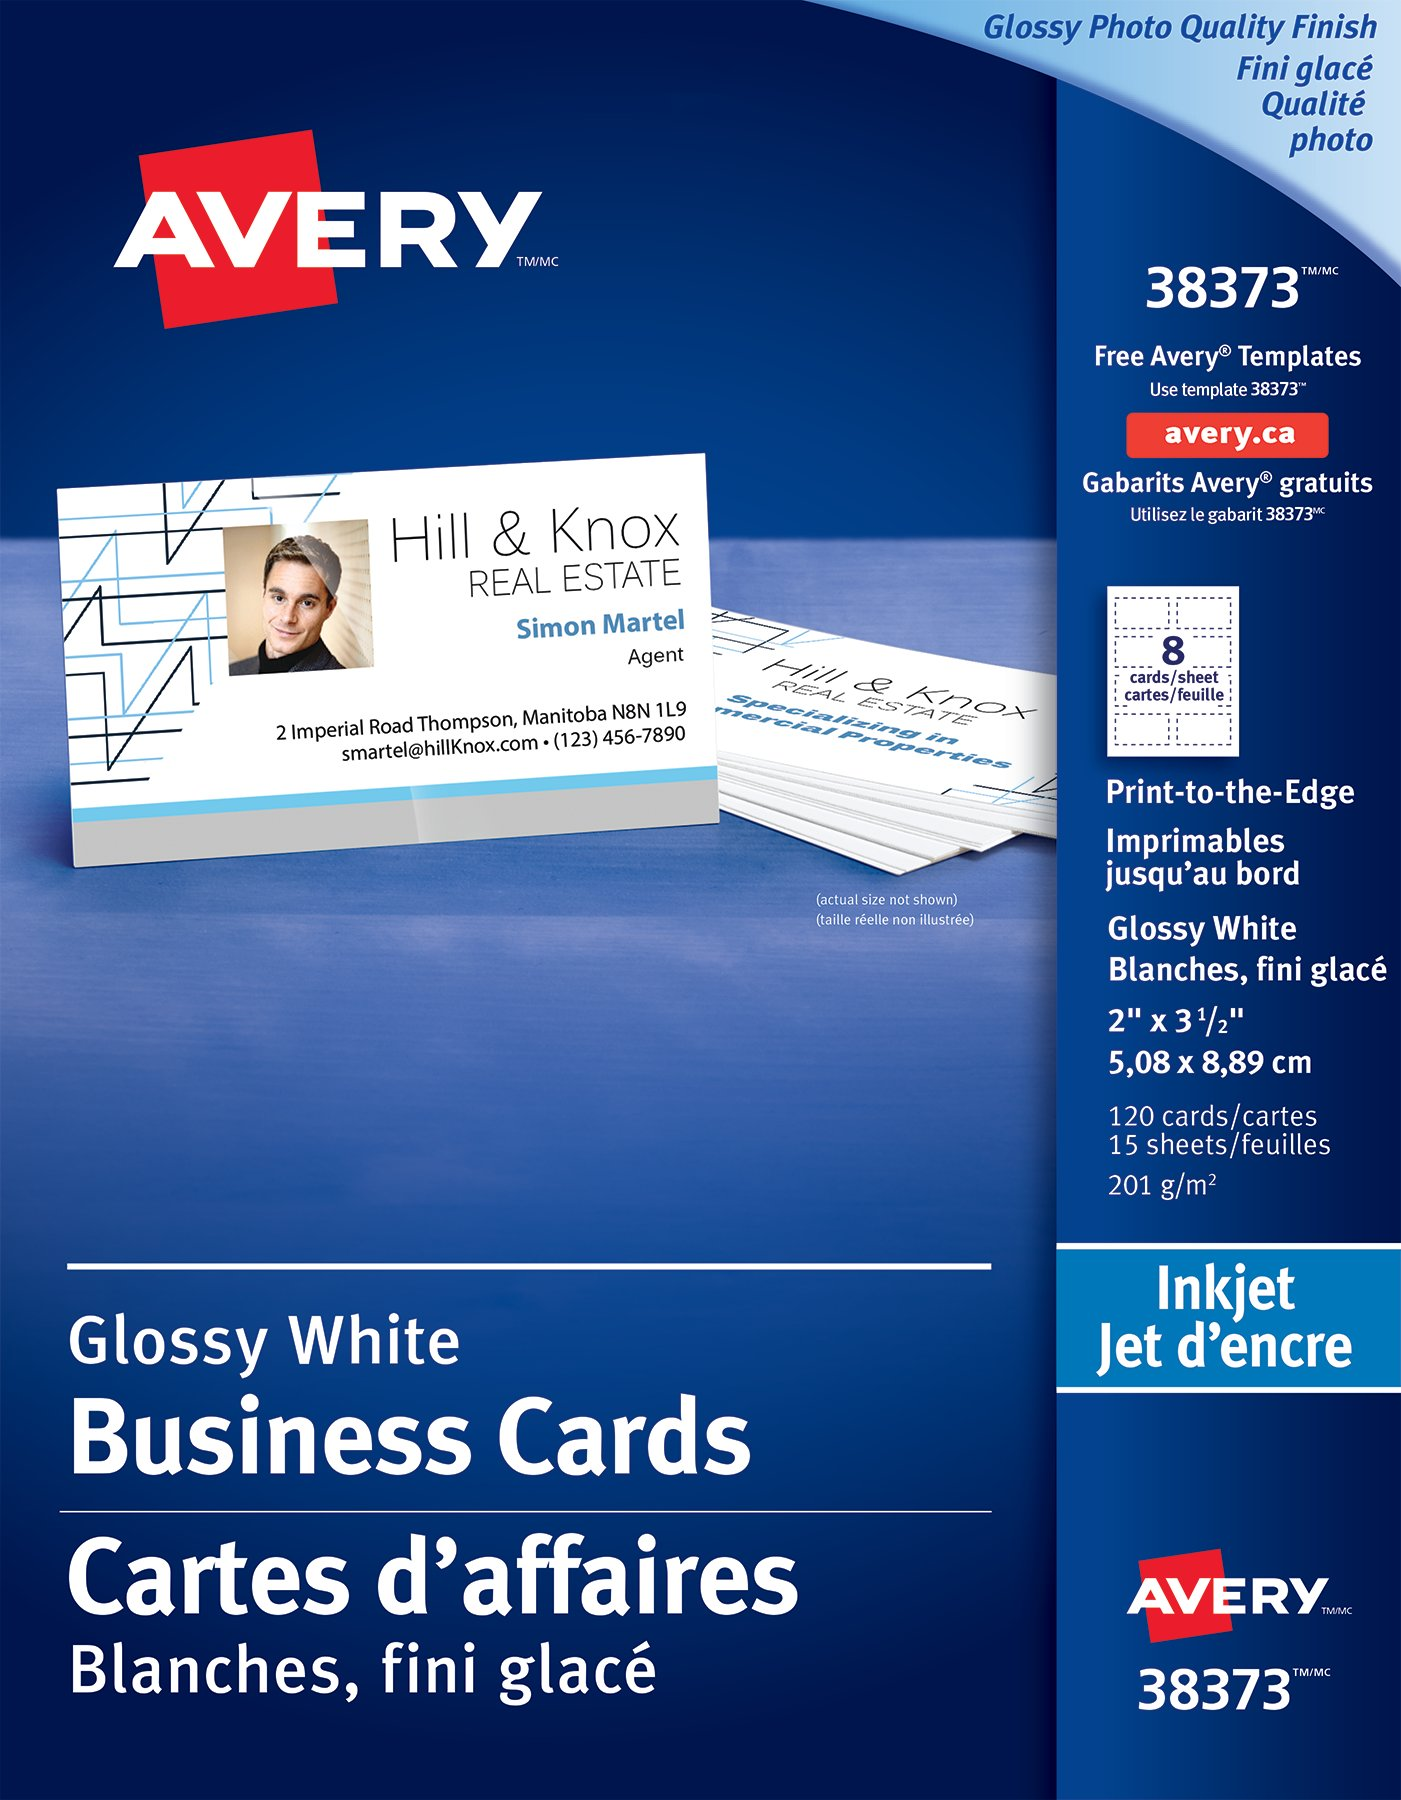 Business cards make your own online custom business card avery glossy photo quality business cards 38373 2 x 3 rectangle reheart